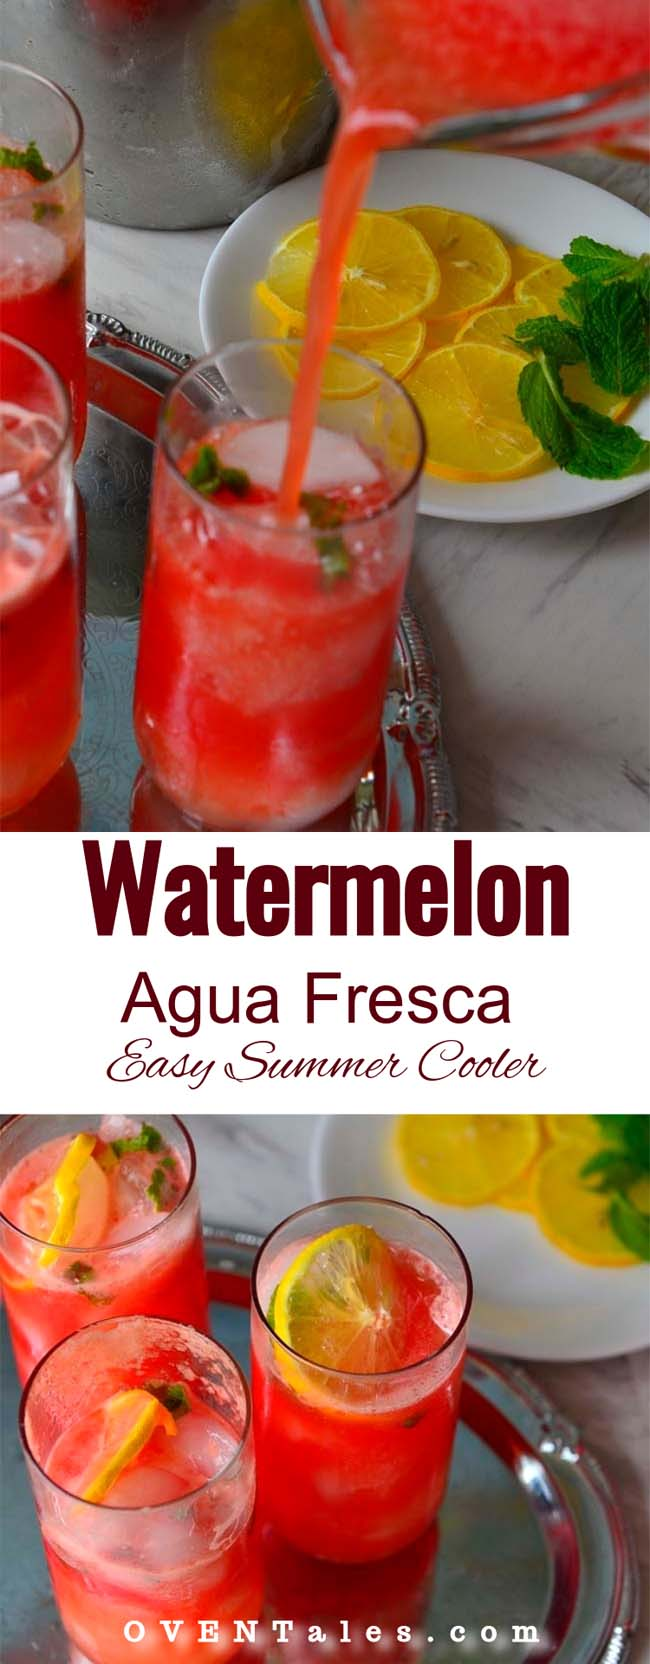 Watermelon Agua Fresca -  A  refreshing  summer drink with watermelon flavors